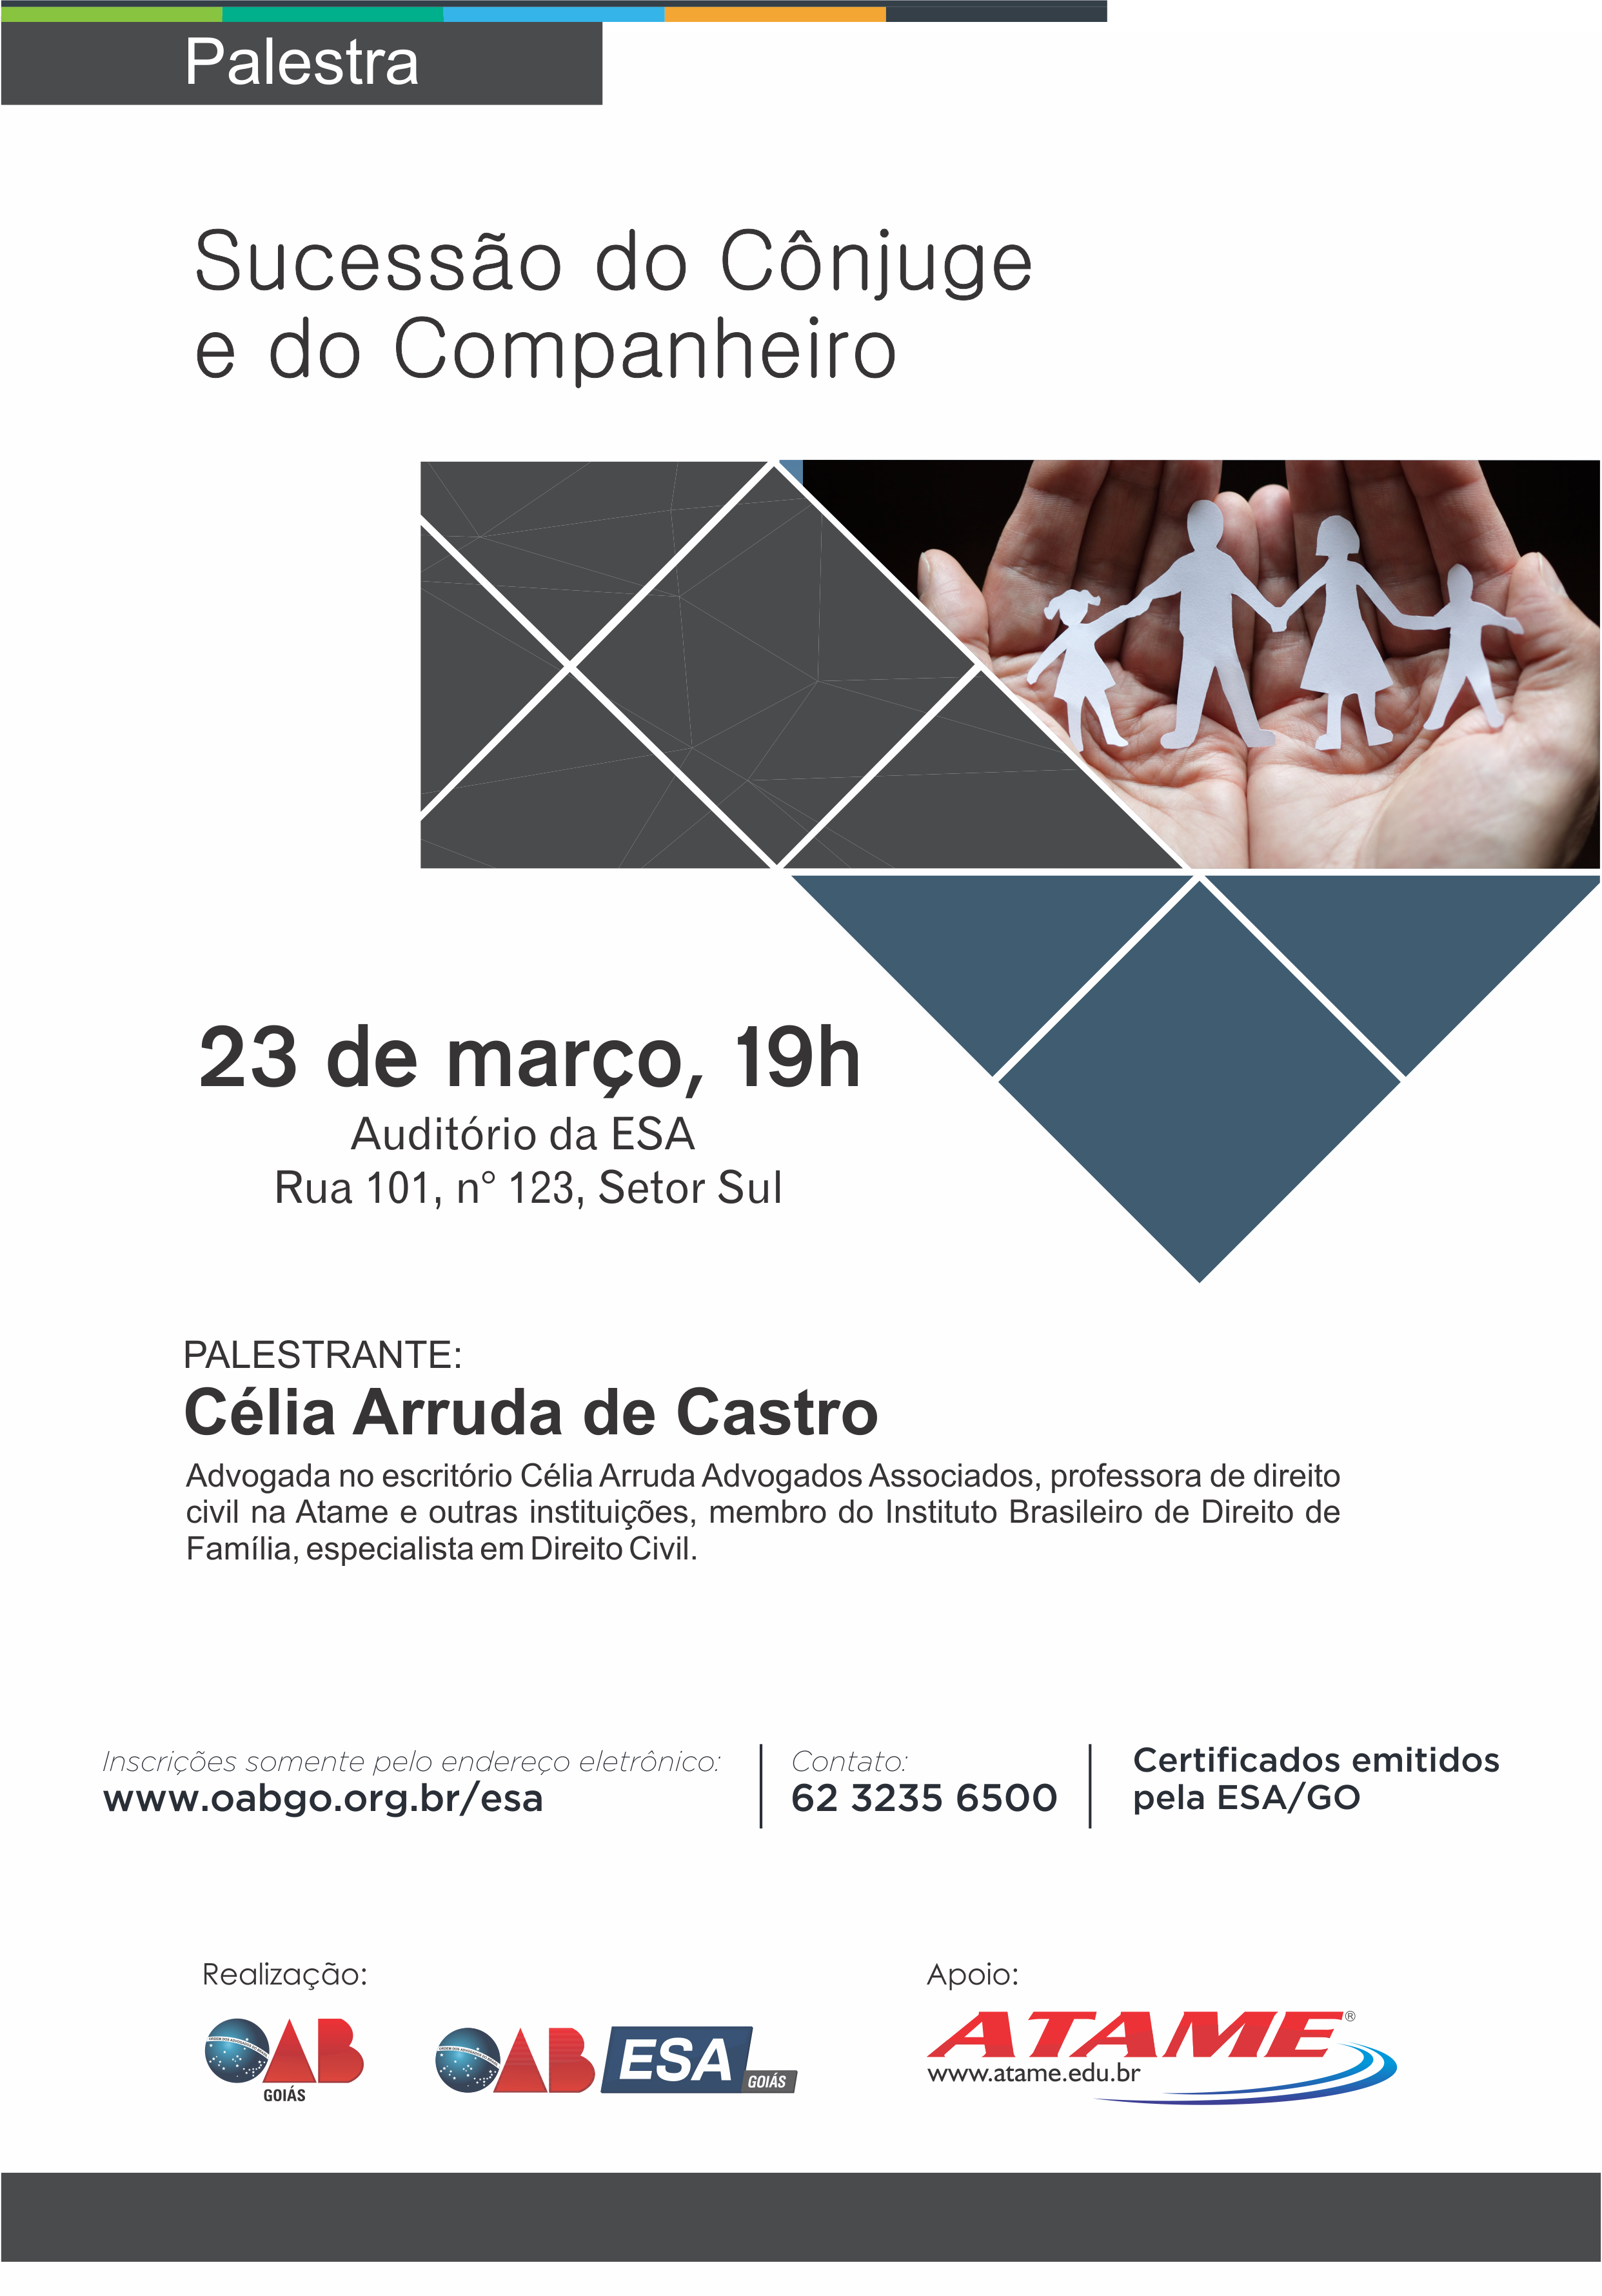 http://www.oabgo.org.br/arquivos/23-12816919.png